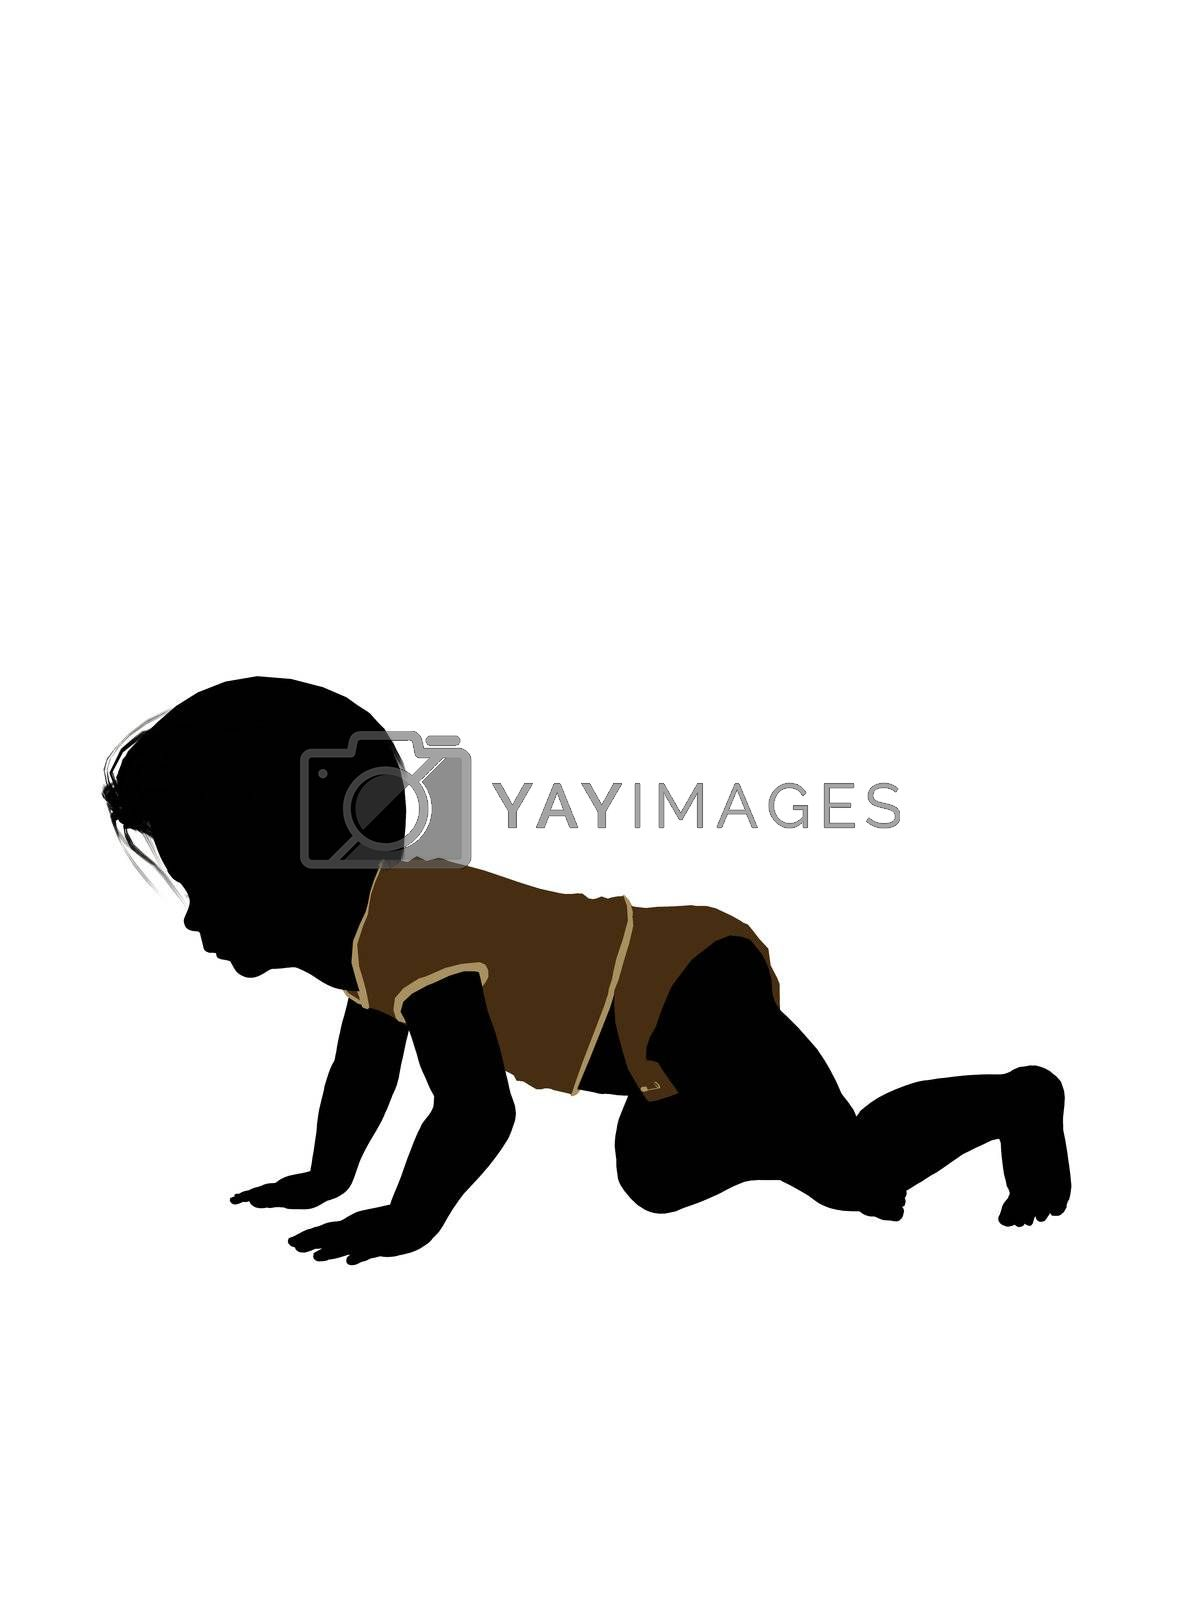 Male infant toddler silhouette on a white background